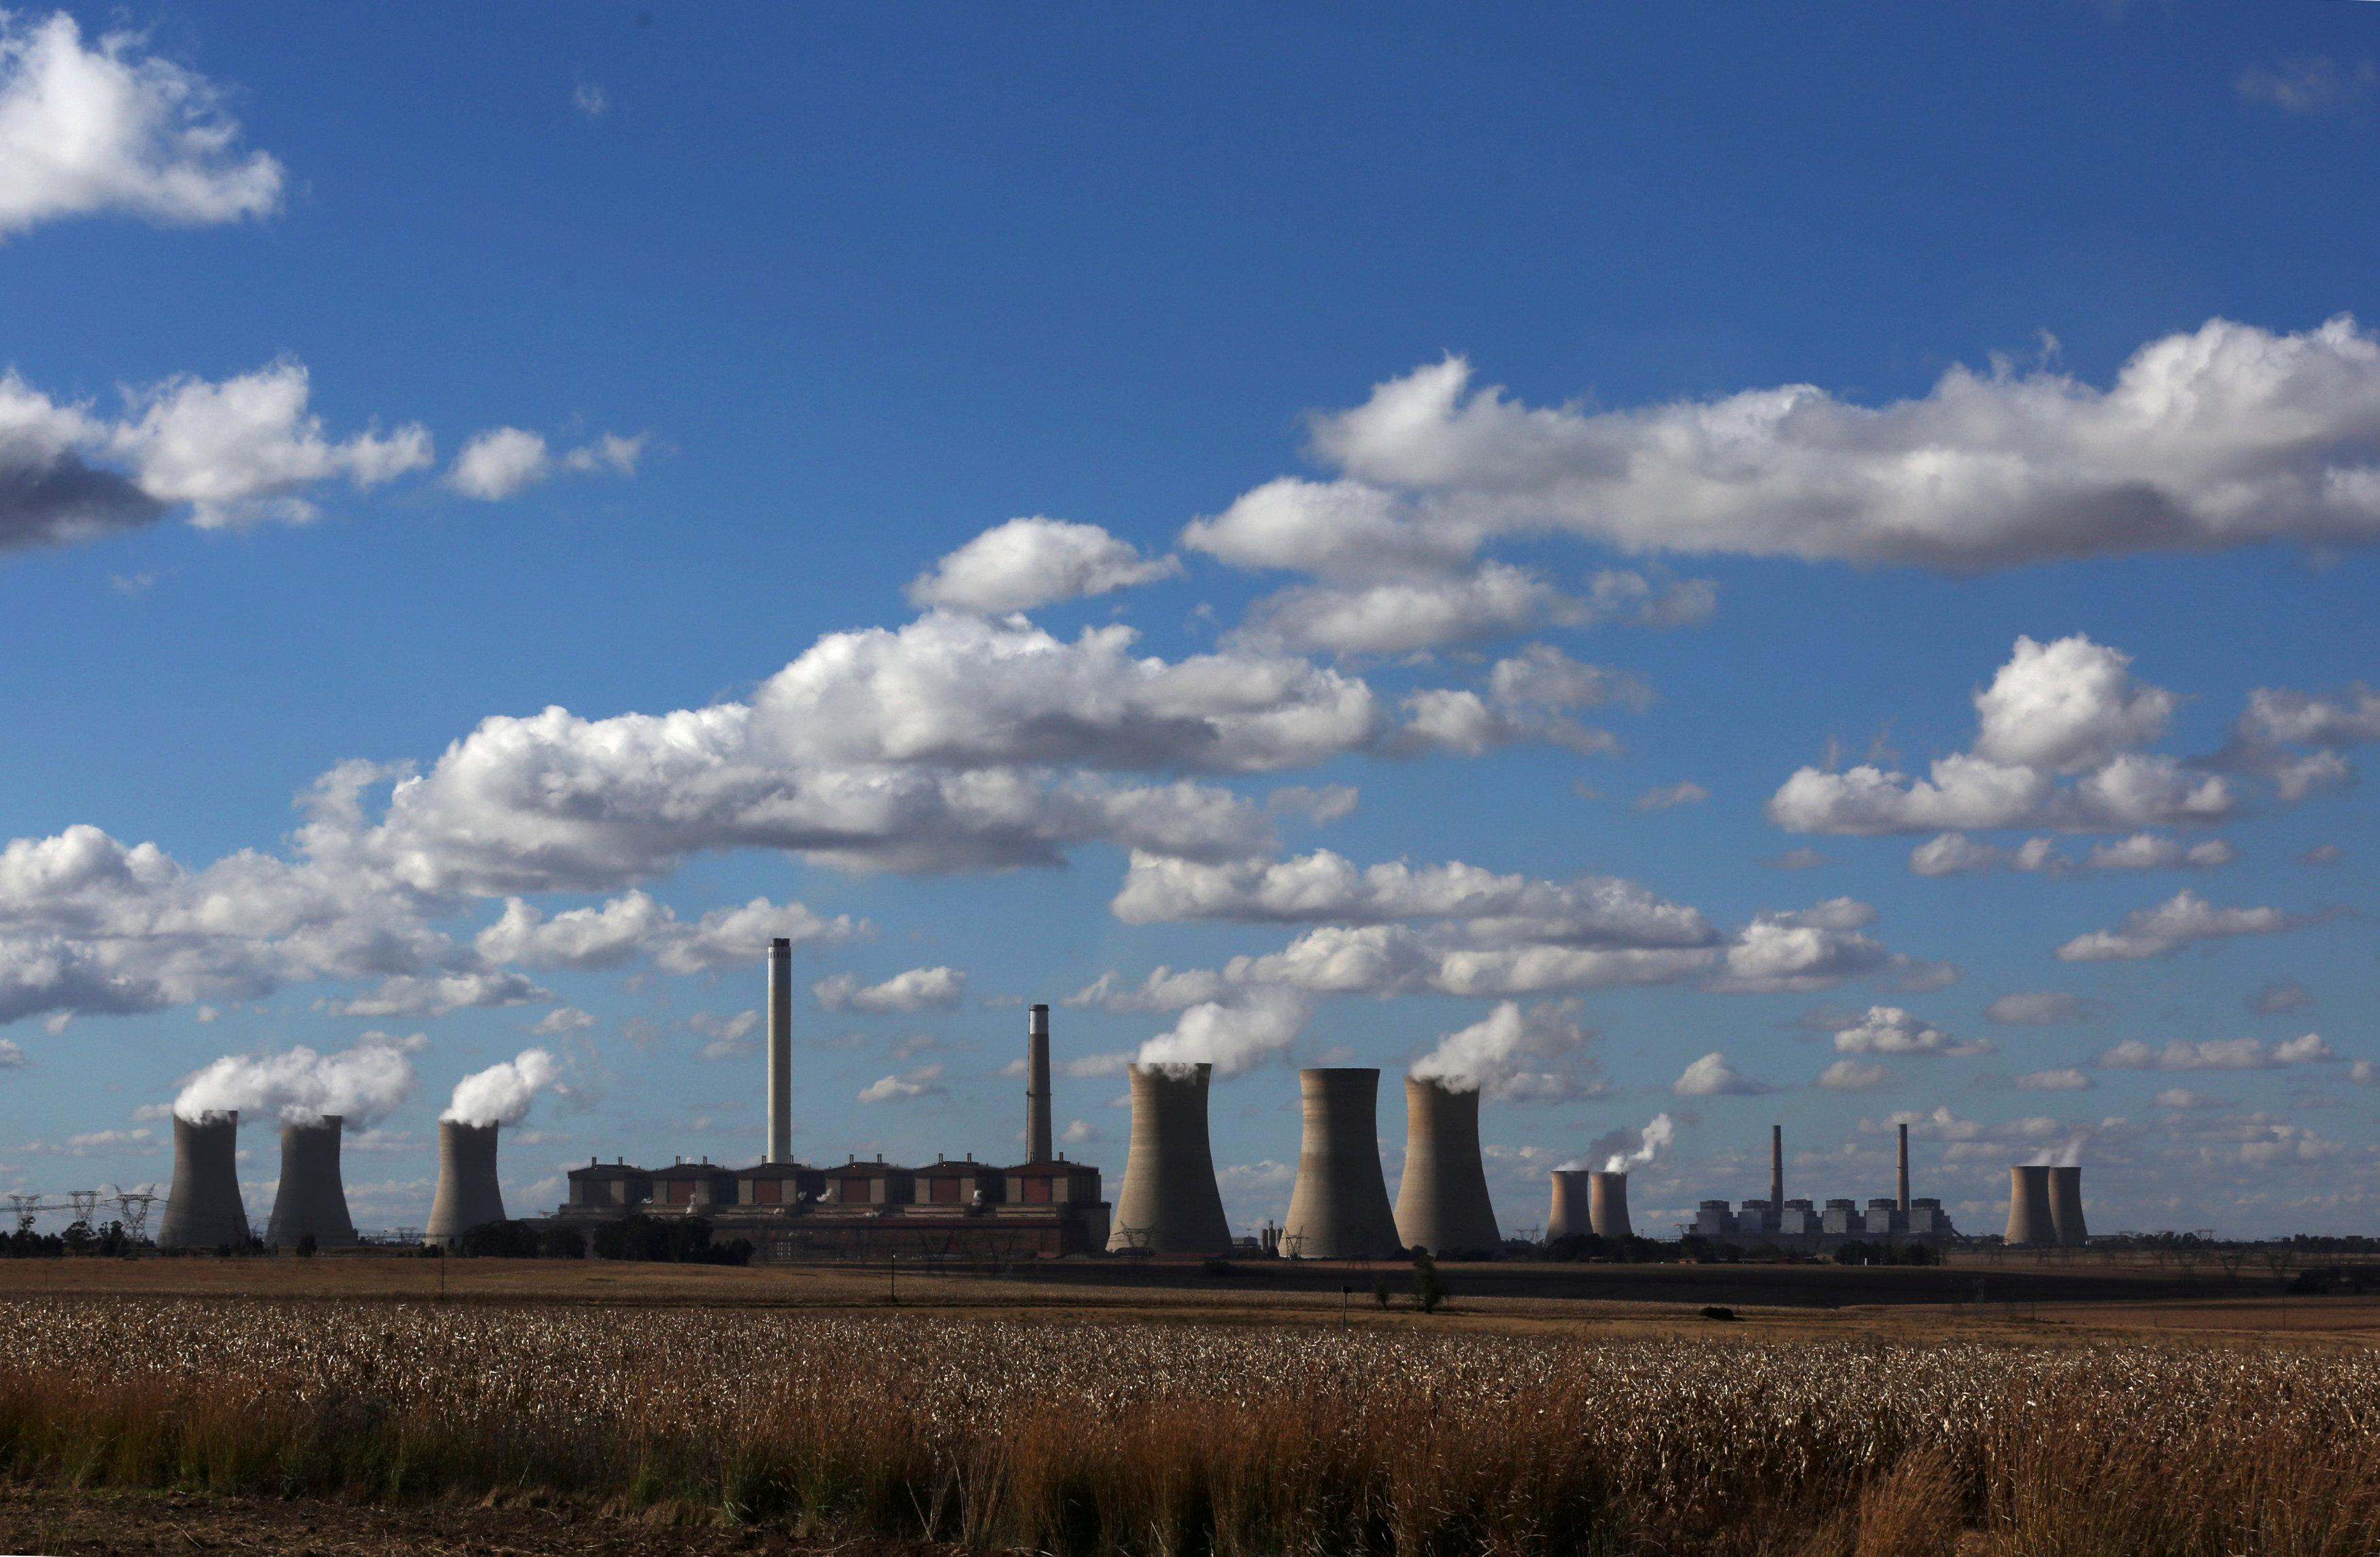 Smoke rises from the cooling towers of Matla Power Station, a coal-fired power plant operated by Eskom in Mpumalanga province, South Africa, May 20, 2018. Siphiwe Sibeko